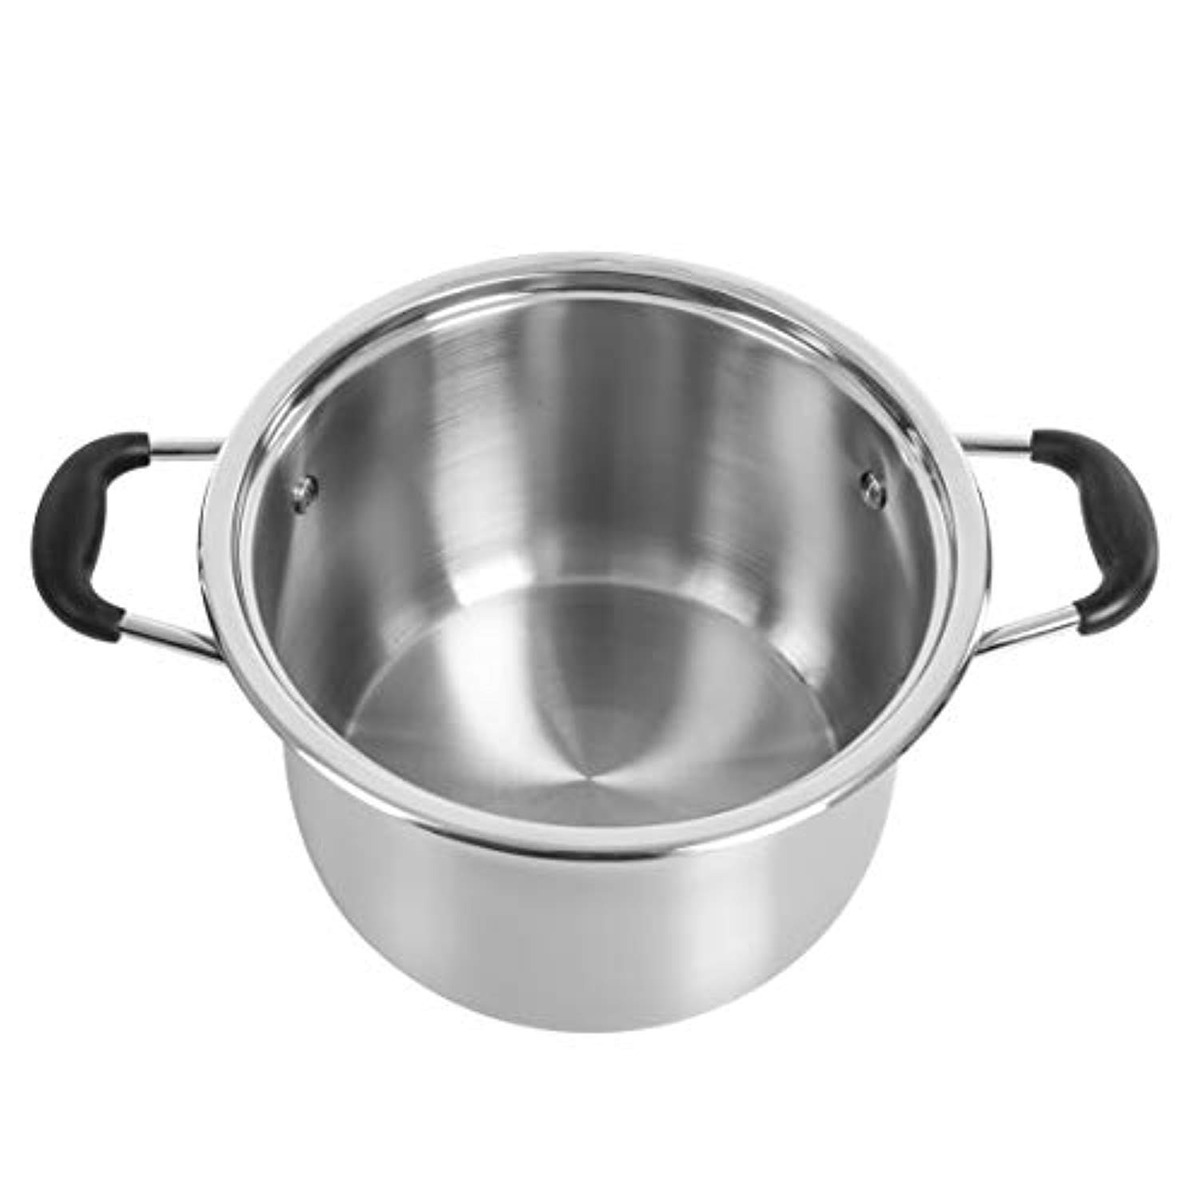 CONCORD Stainless Steel Stock Pot with Glass Lid Concord Cookware COMIN18JU058186 Induction Compatible 5 QT